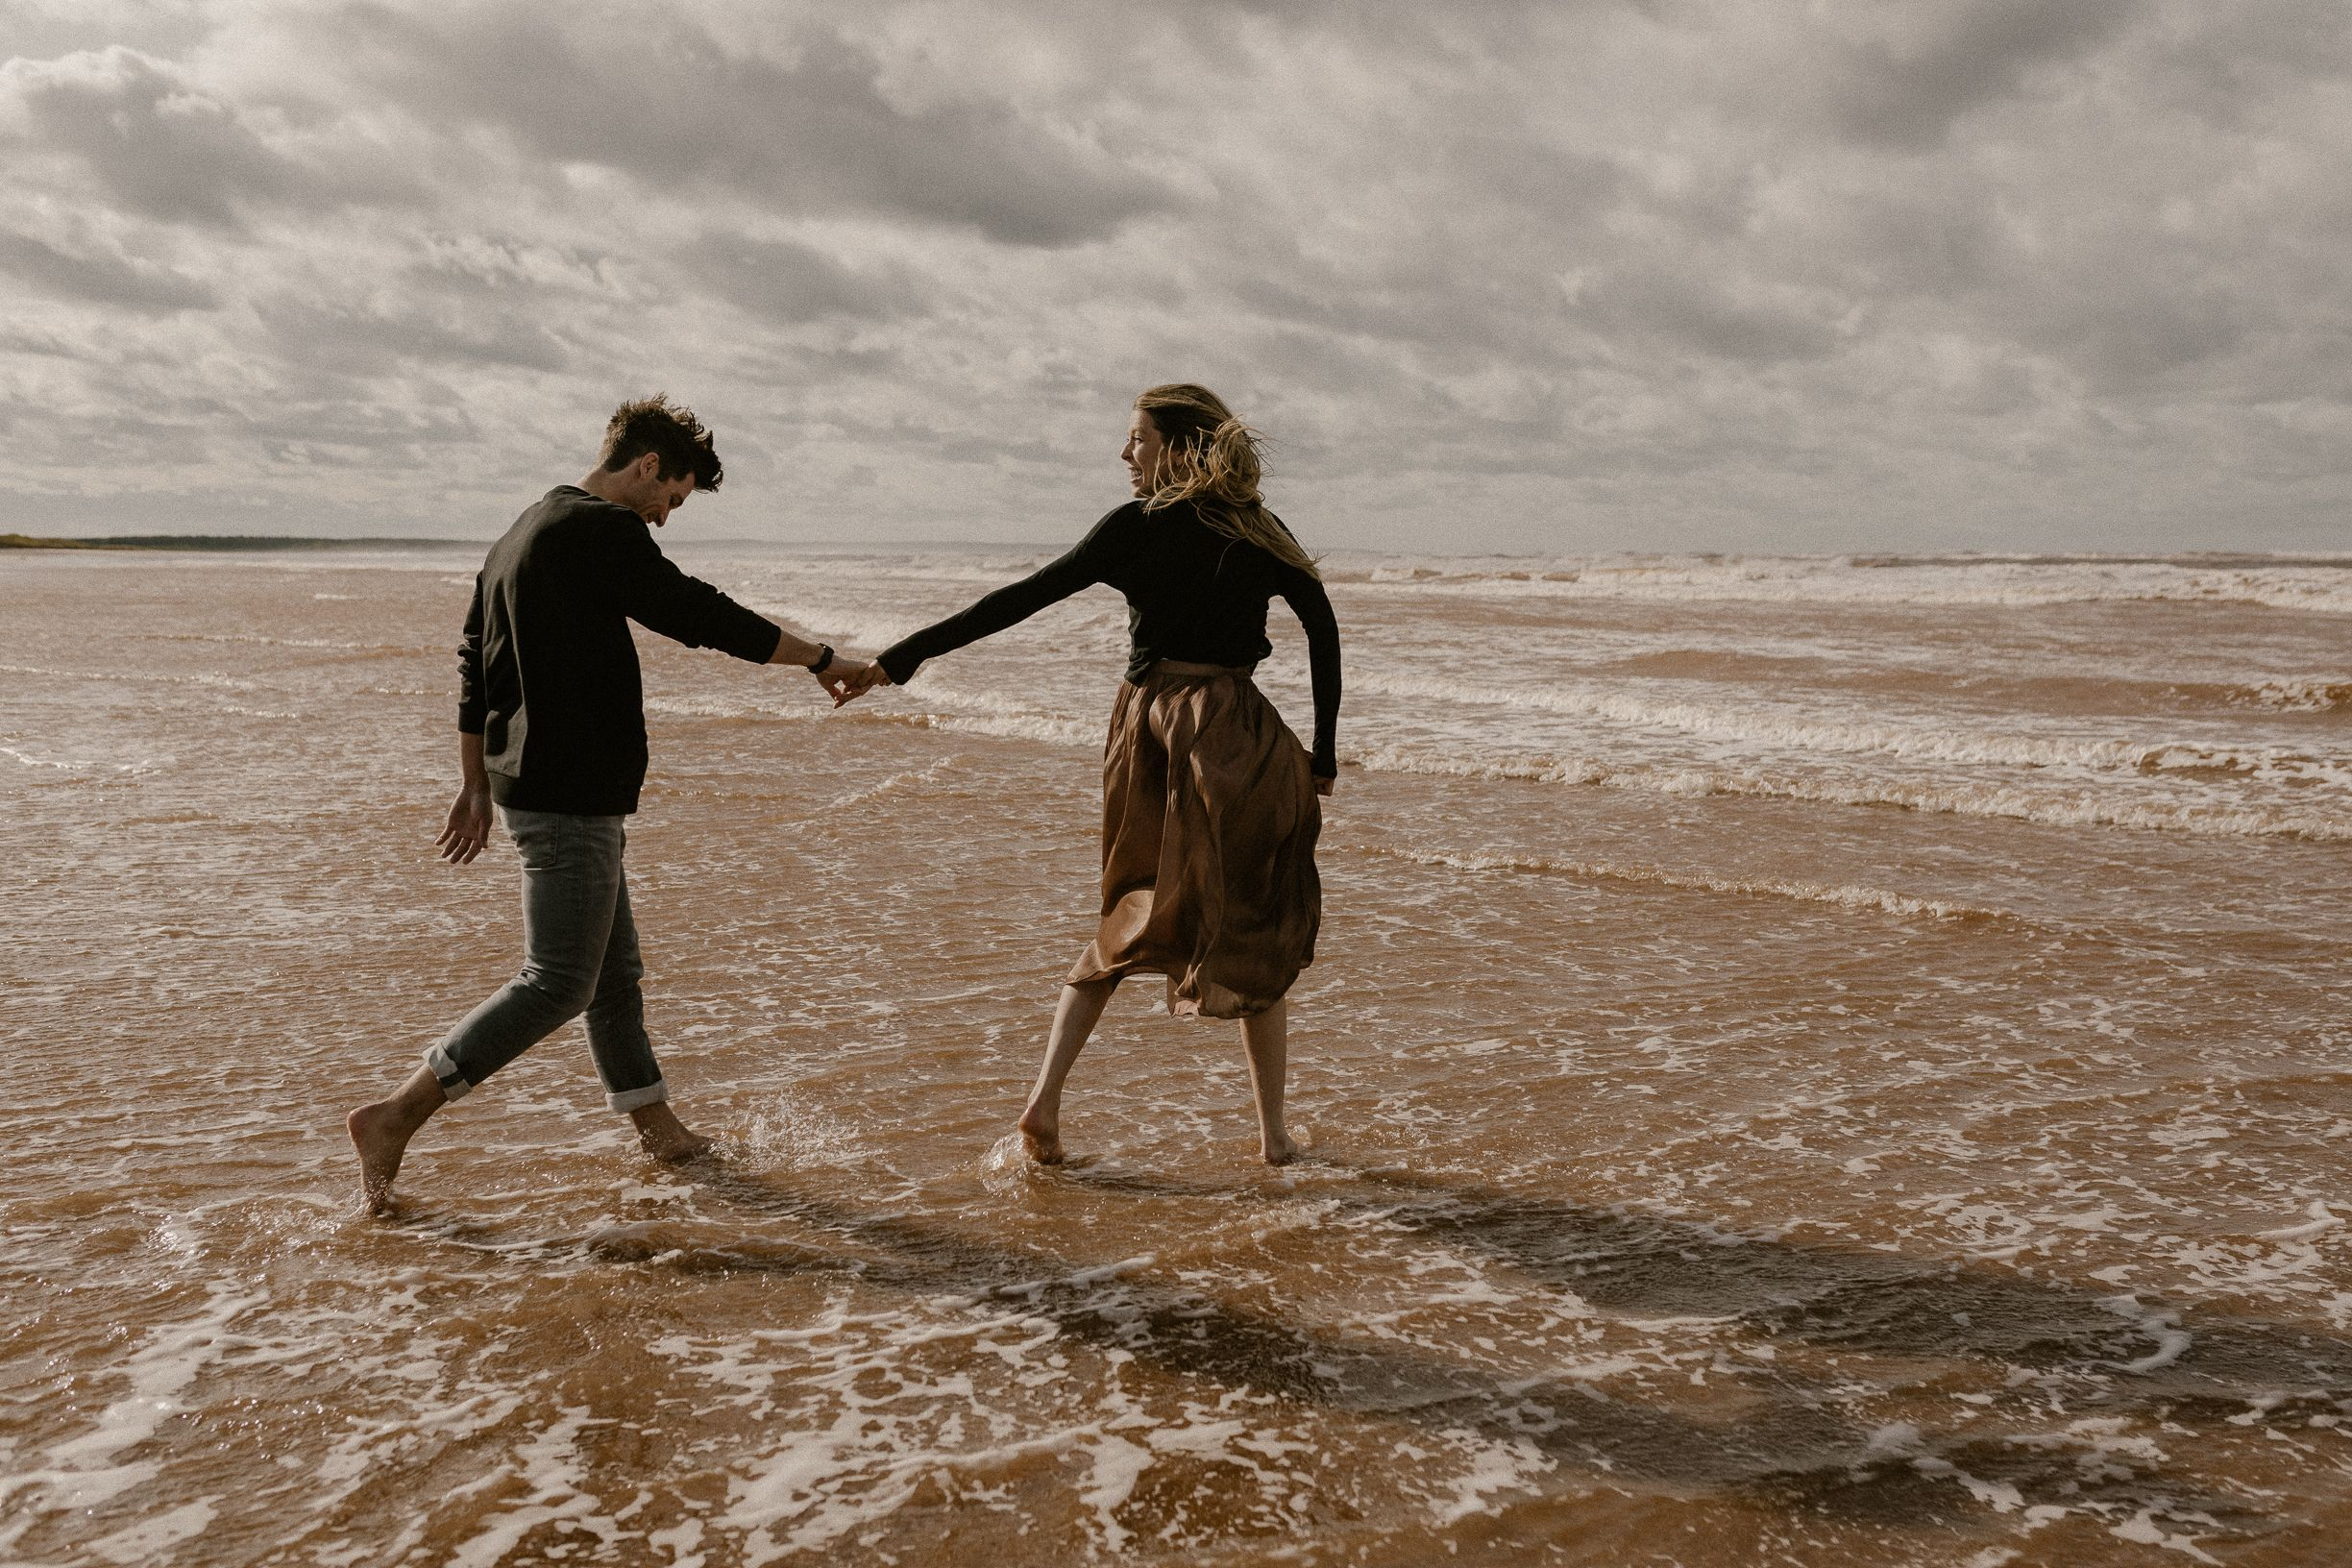 Couple at PEI beach holding hands looking back at each other and walking in the waves.